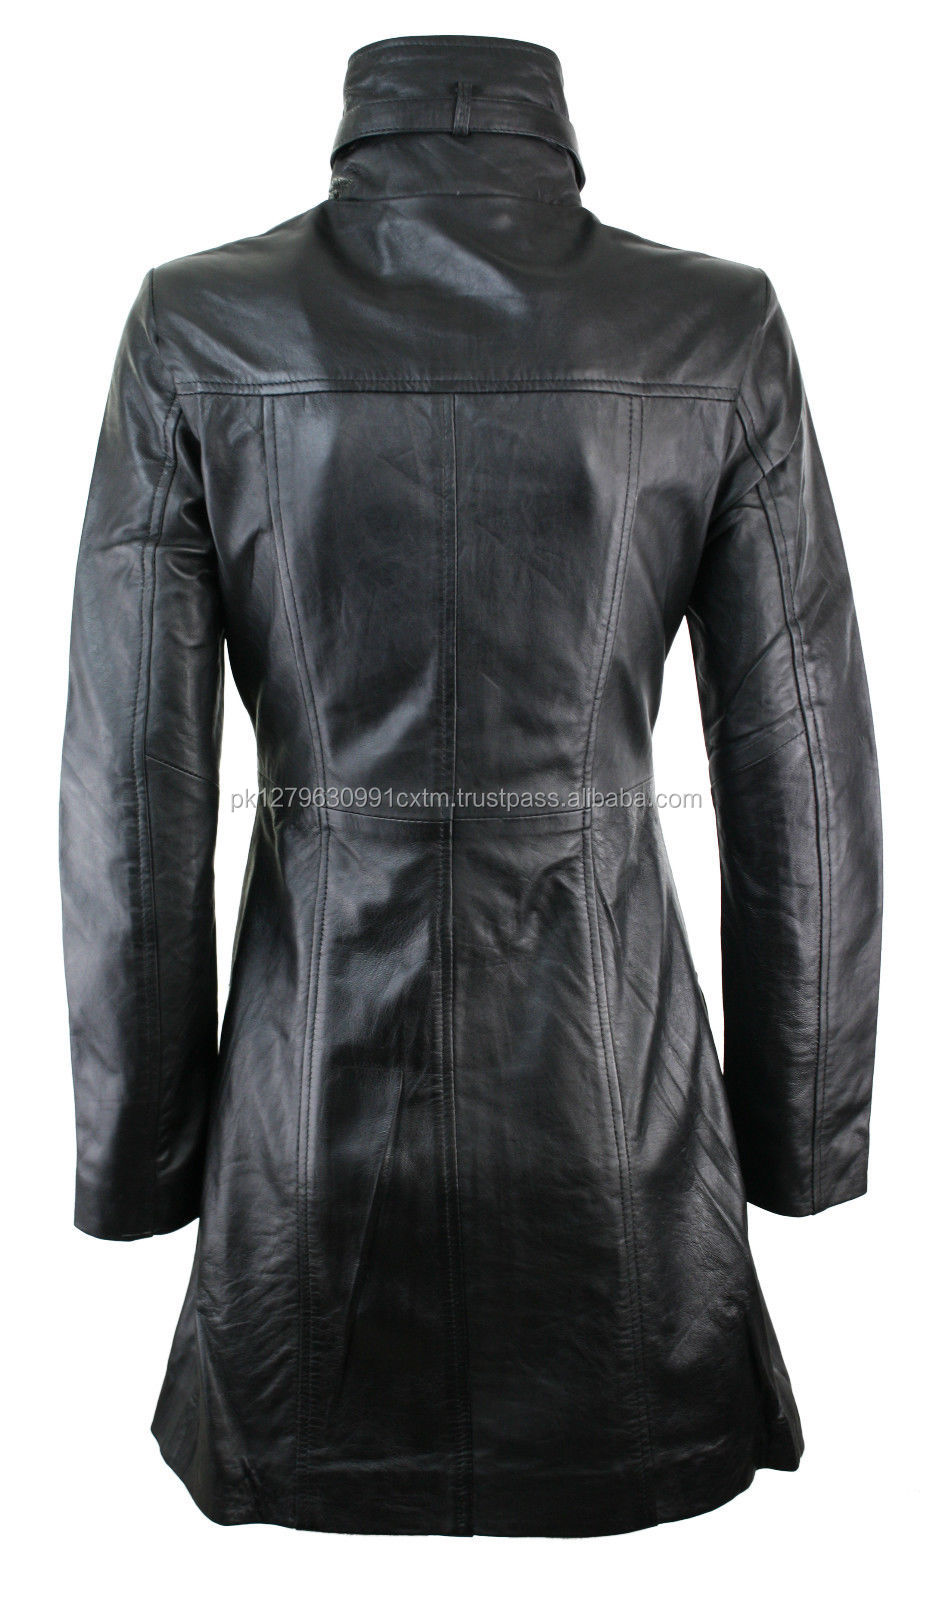 New Jude Black Soft Beautiful Leather 100% Genuine Soft Touch Leather Jacket